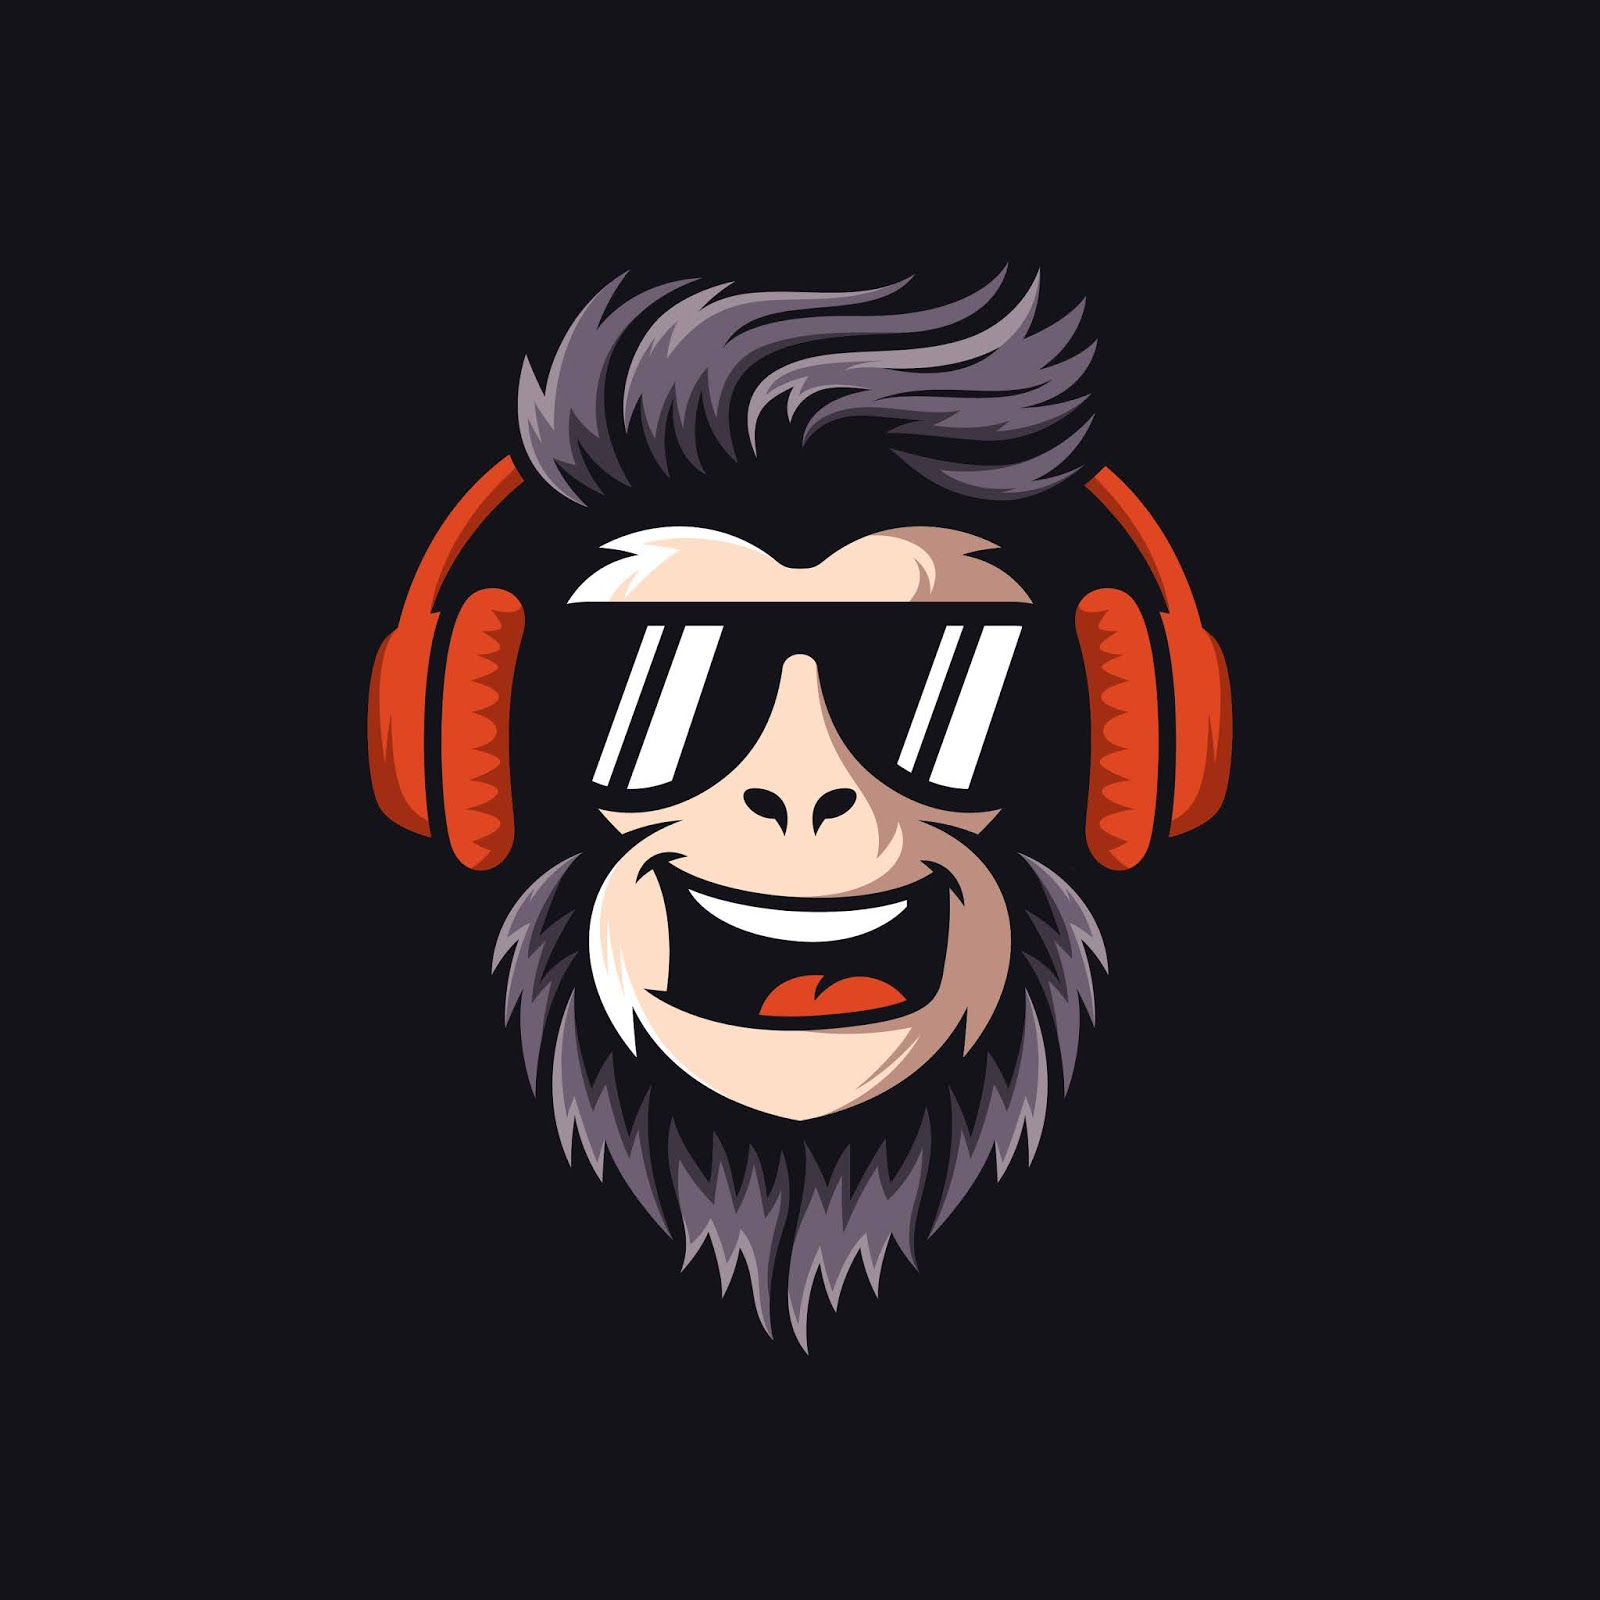 Cool Monkey Logo Design Vector Illustrator Free Download Vector CDR, AI, EPS and PNG Formats